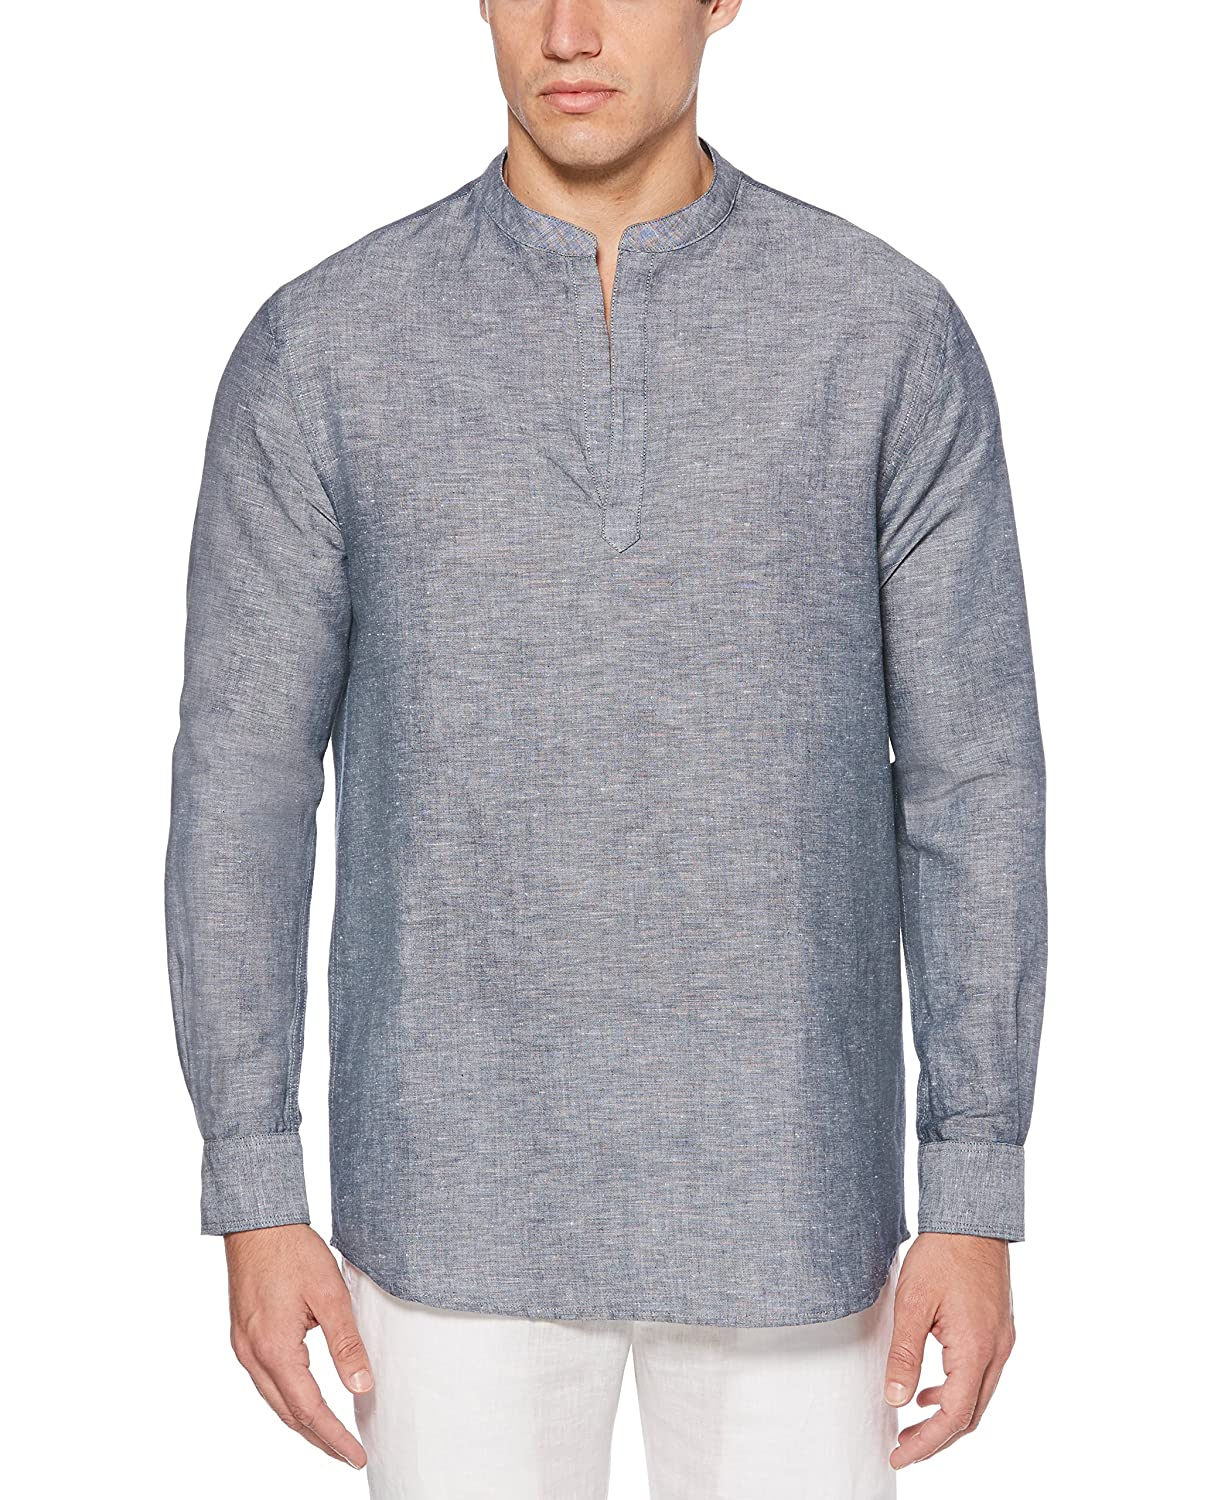 97548f38ca32 Perry Ellis Men's Long-Sleeve Solid Linen Cotton Popover Shirt at Amazon  Men's Clothing store: